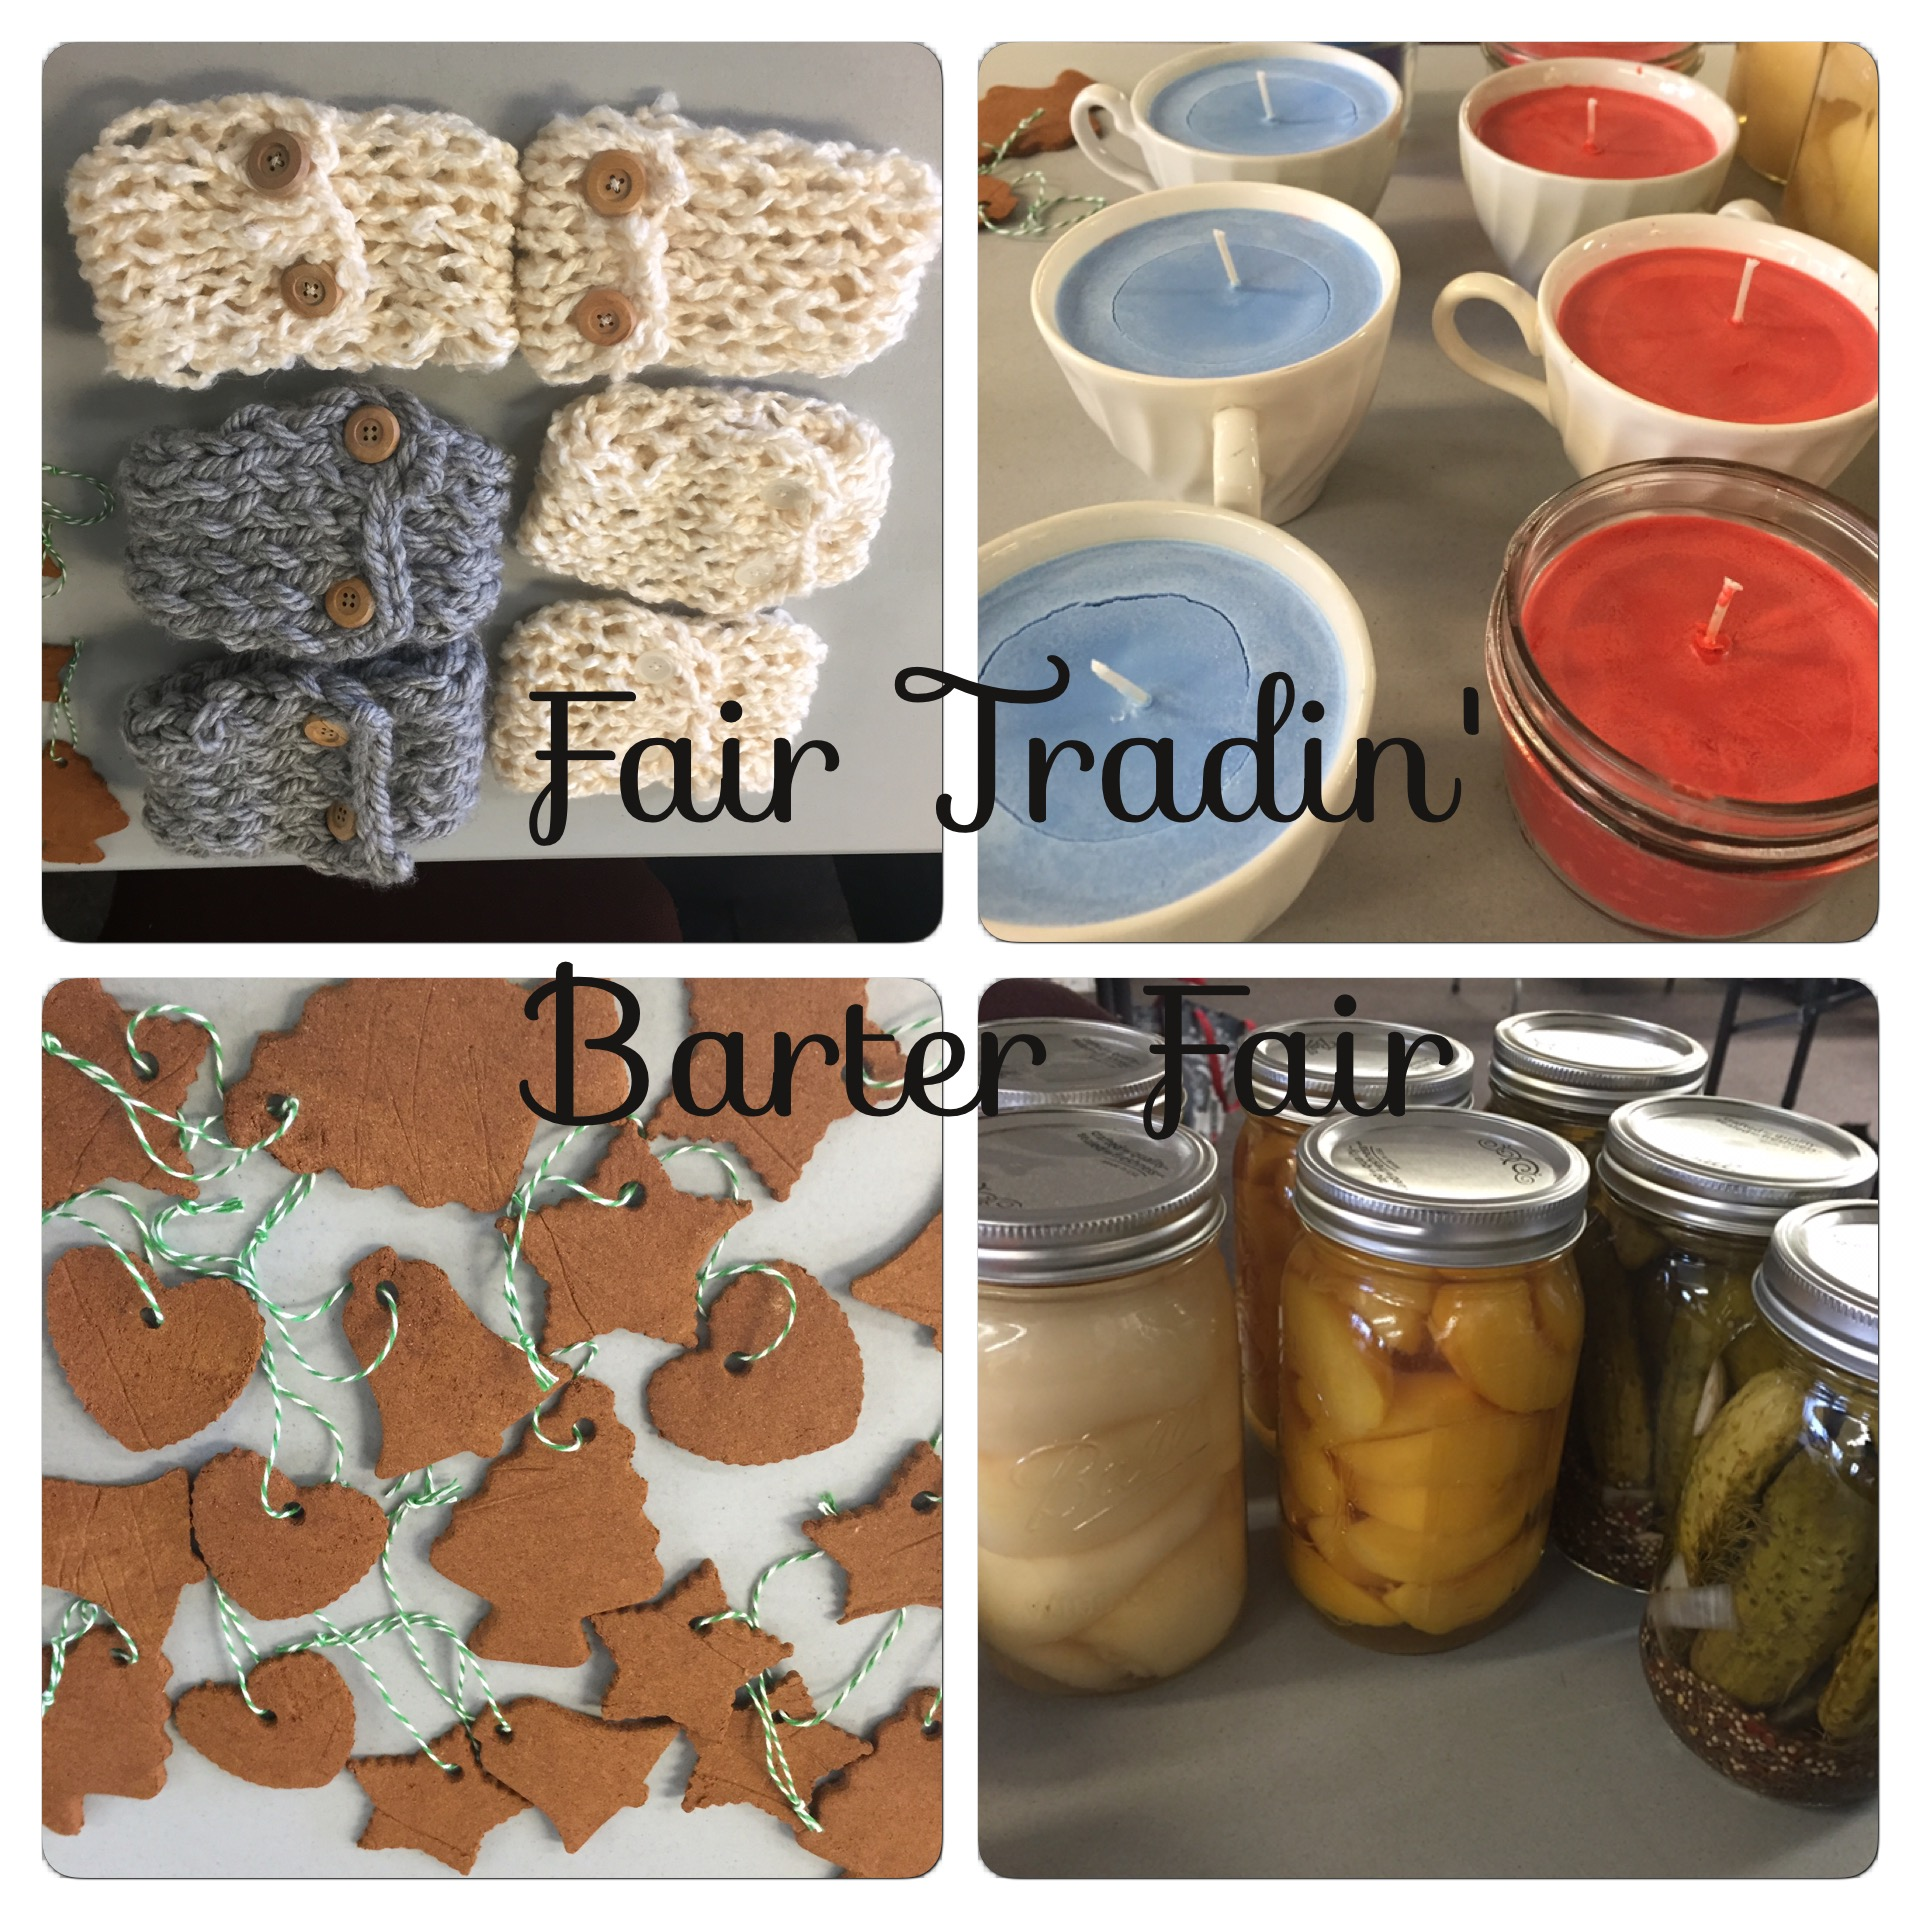 barter craft fair. boot cuffs, soy candles, cinnamon christmas ornaments, and canned food.   www.bexbernard.com